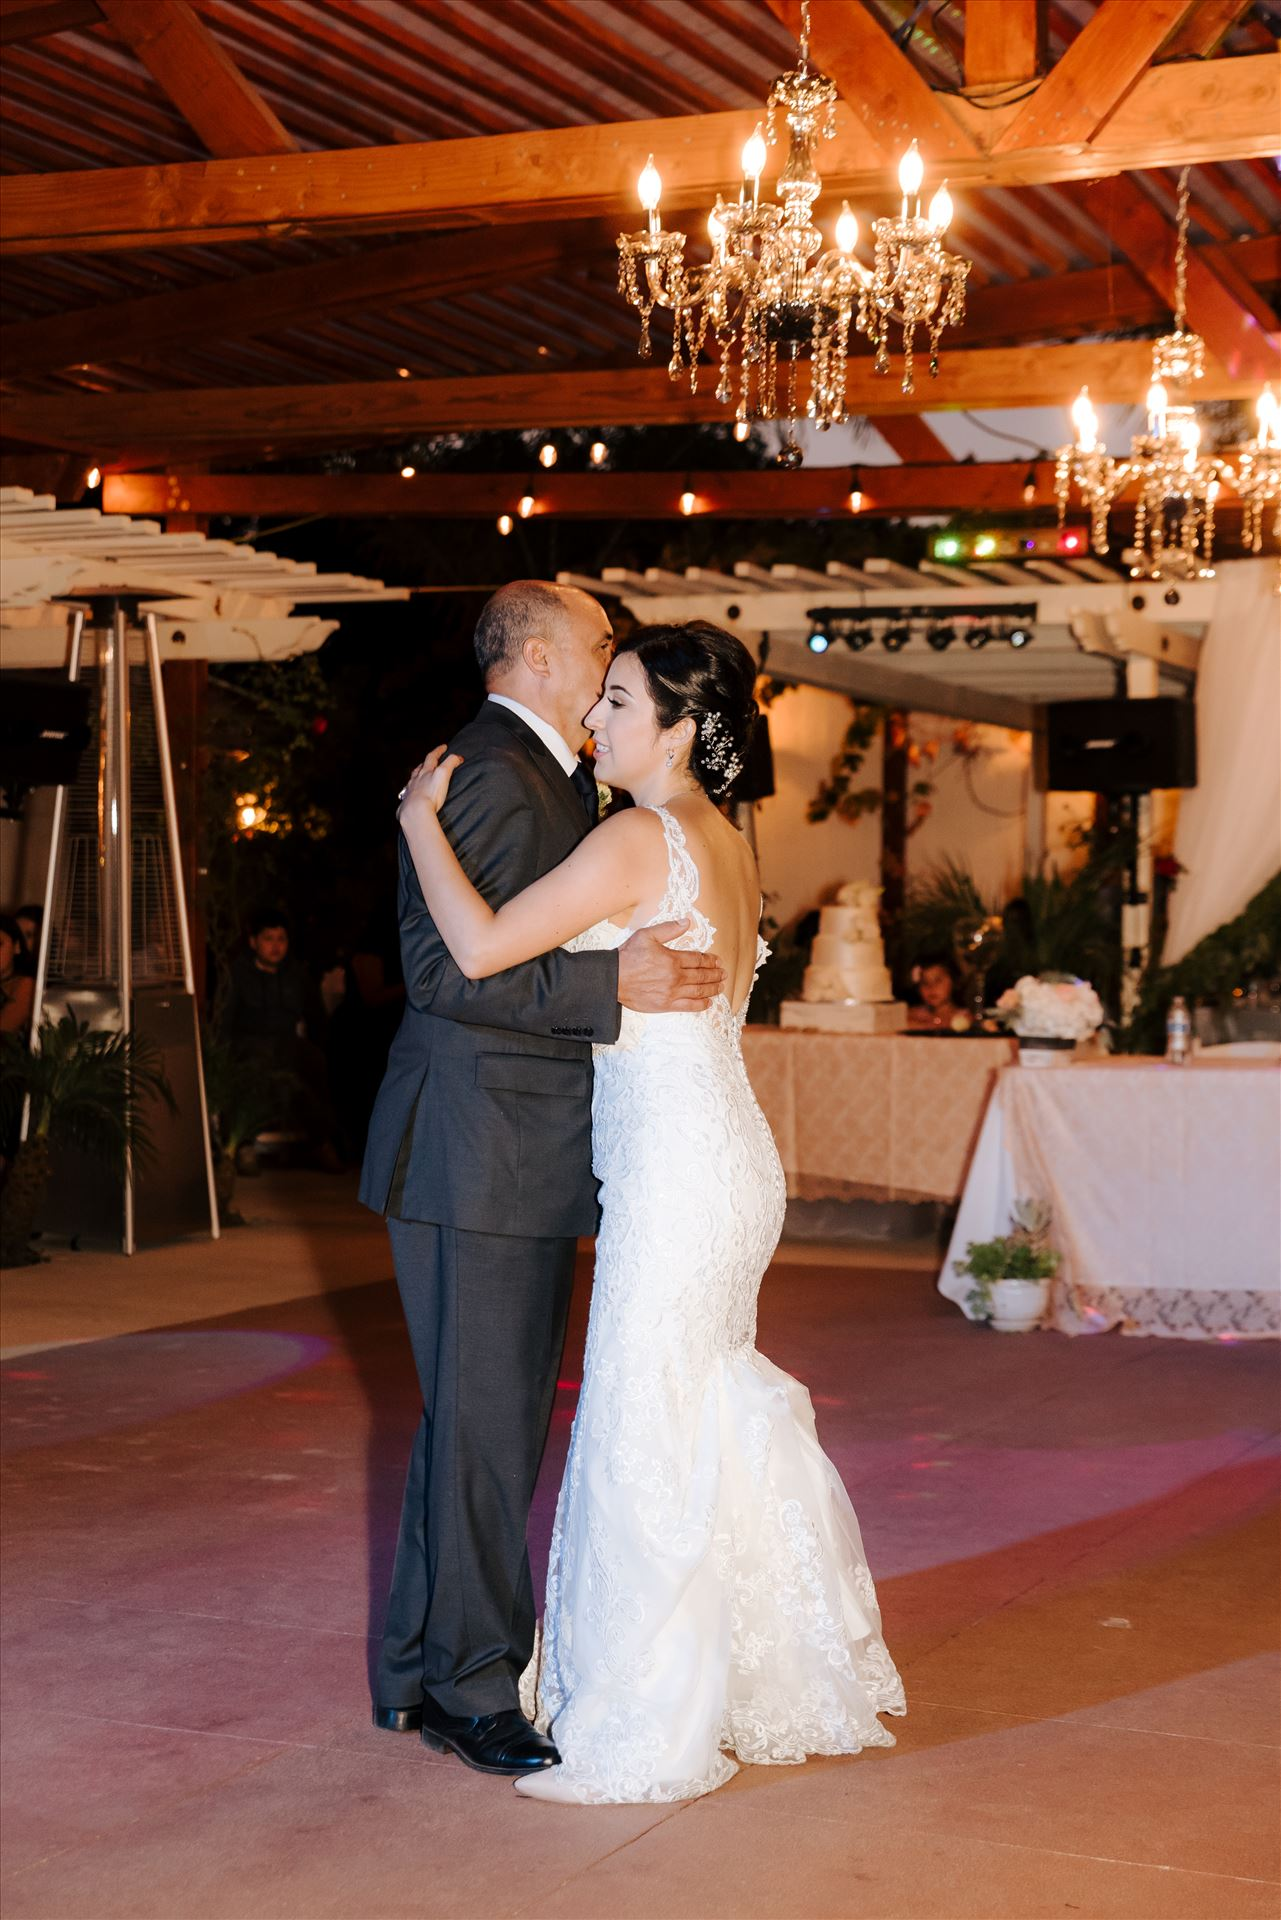 Carlos and Cindy 092 -  by Sarah Williams